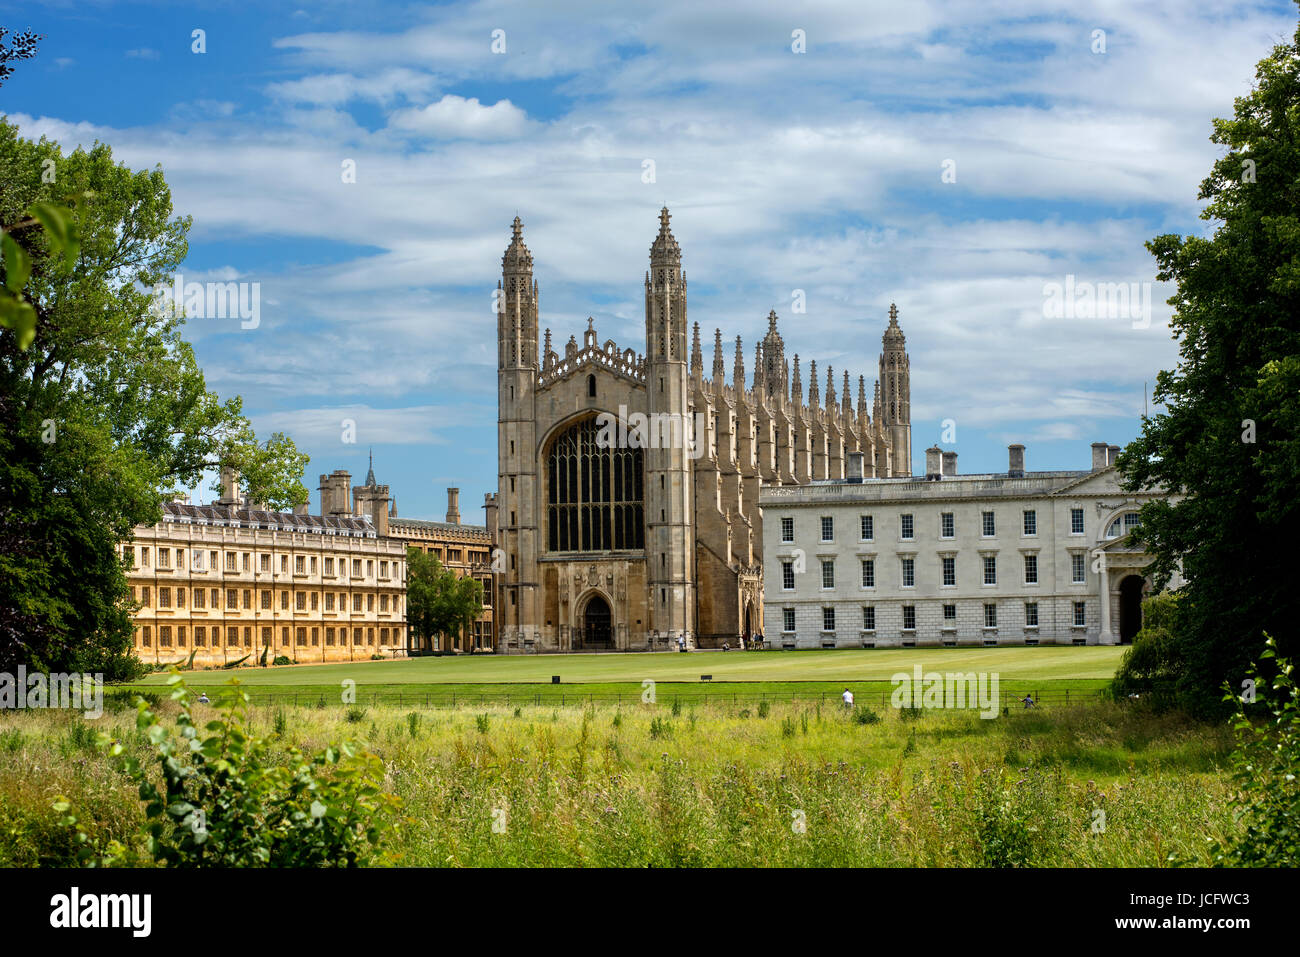 Cambridge, Cambridgeshire, England UK. King's College viewed across the River Cam from the backs in Cambridge. - Stock Image